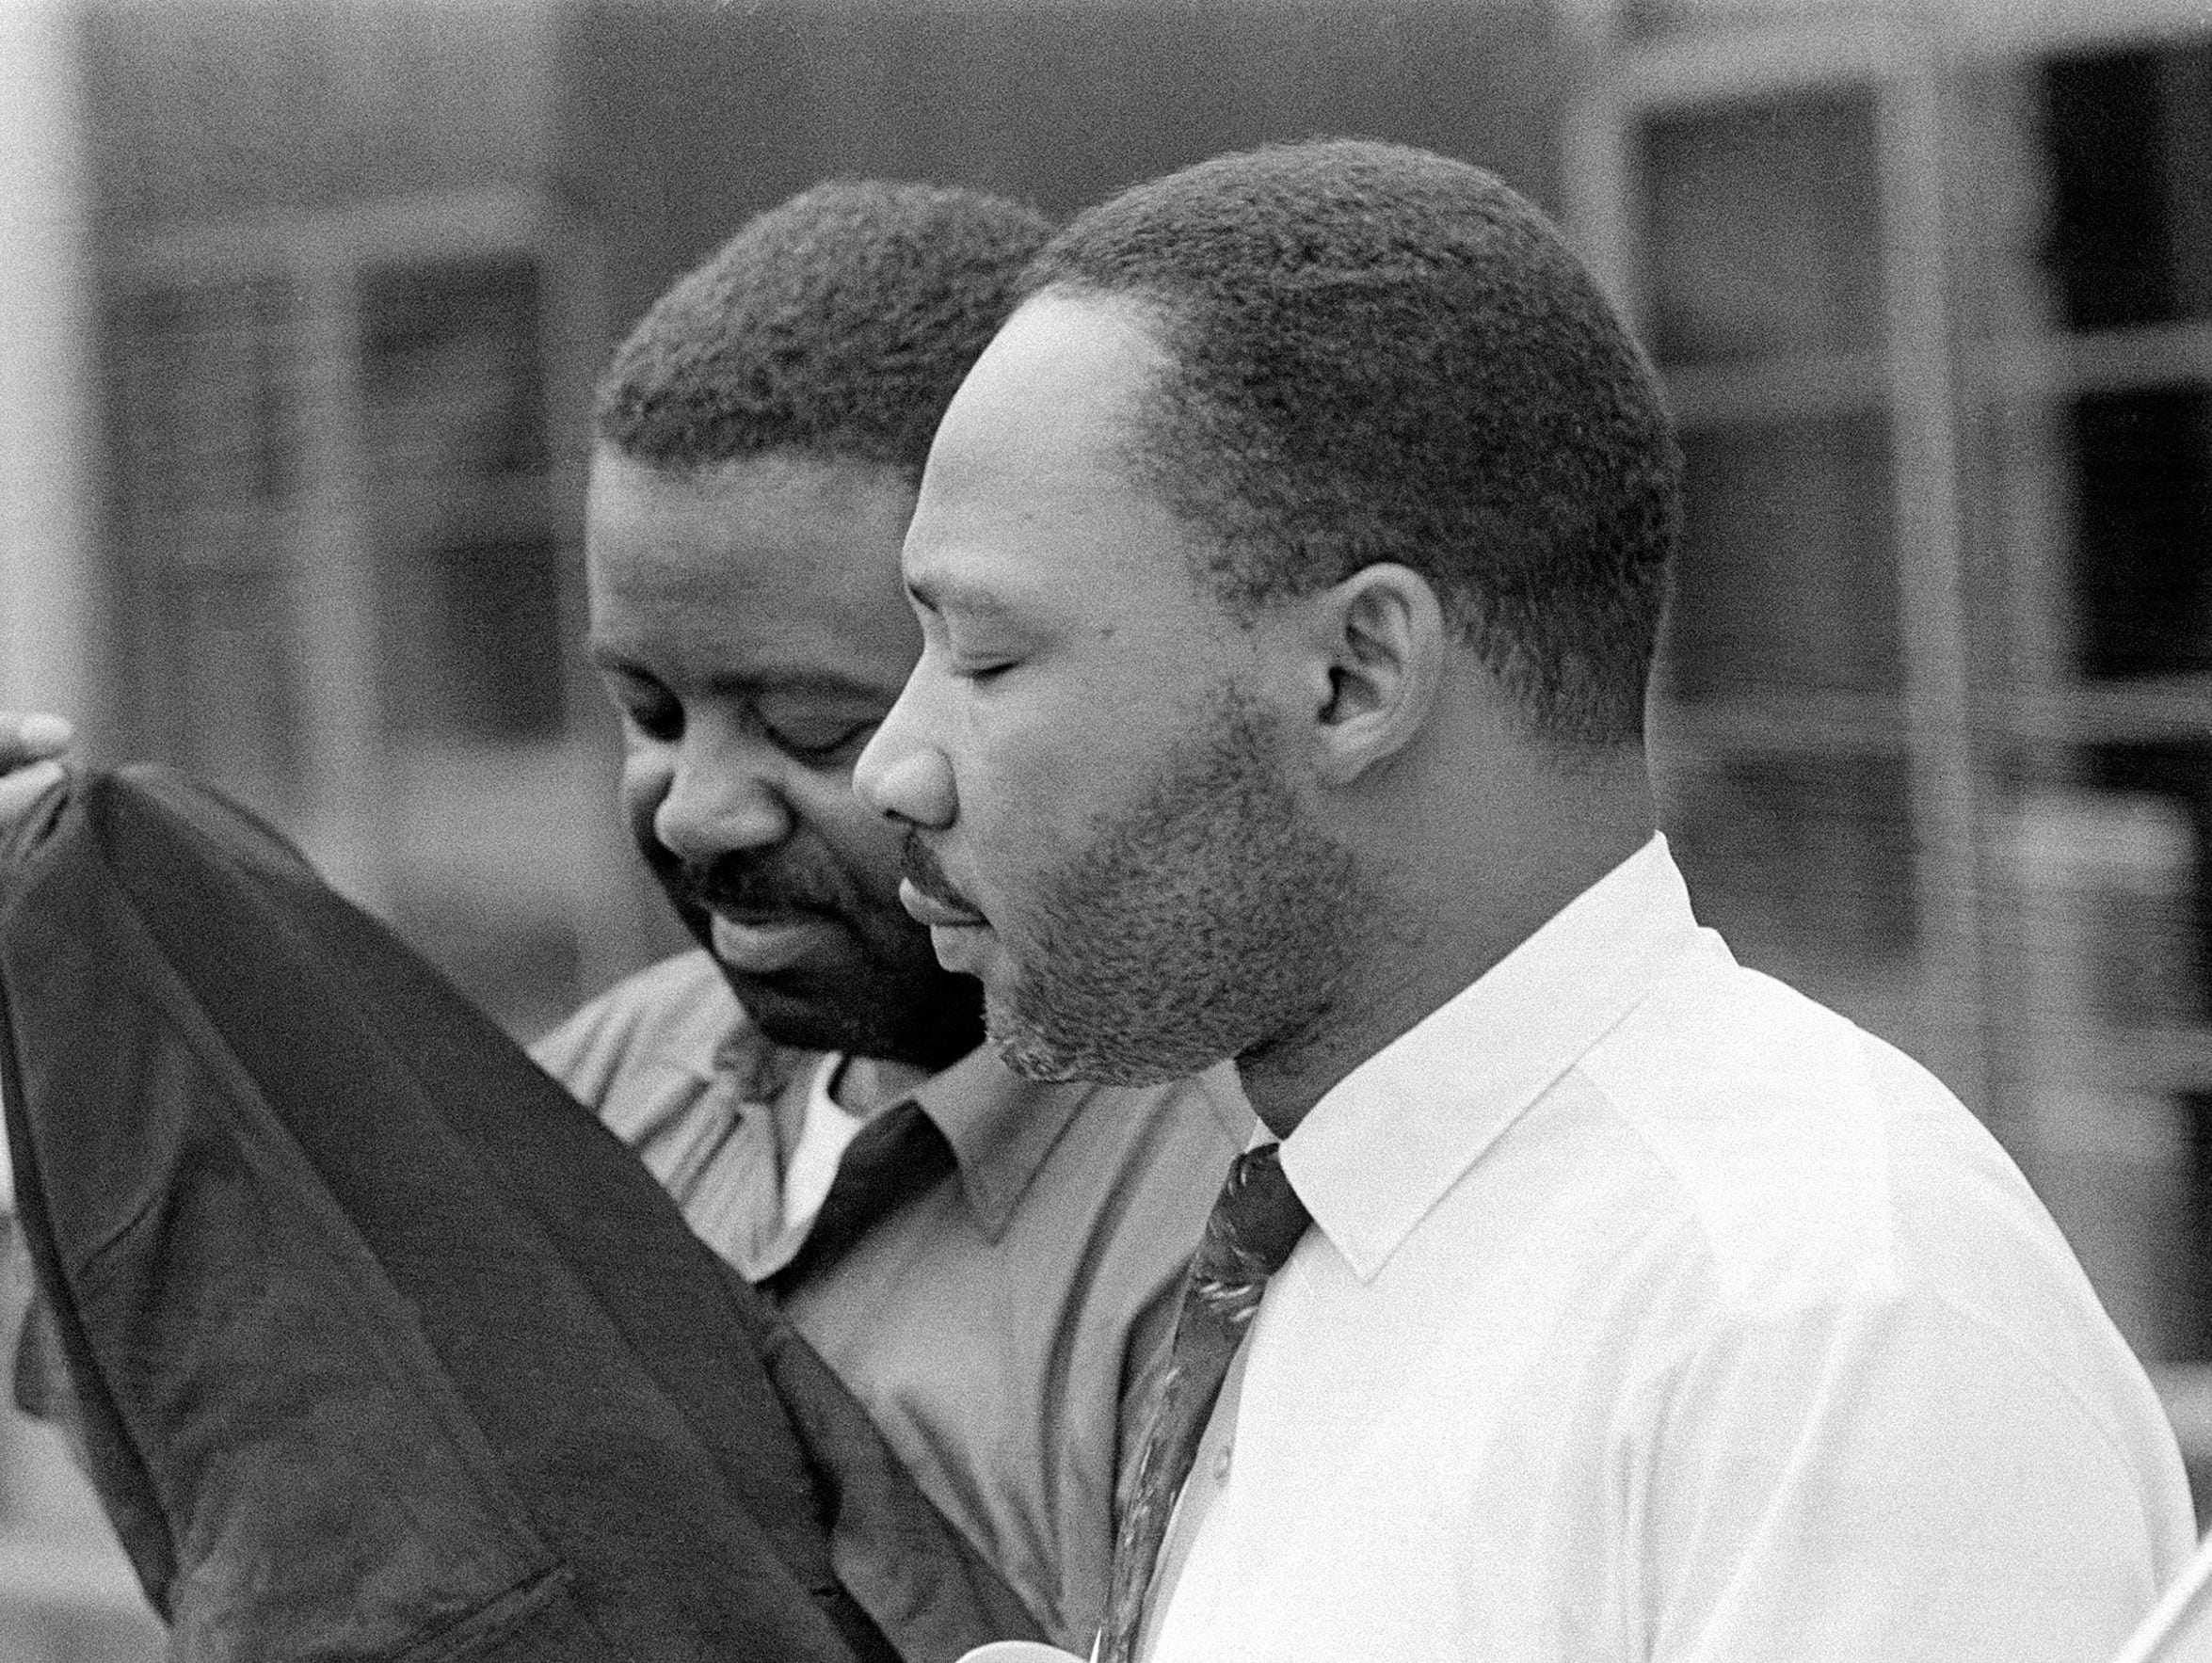 The Rev. Martin Luther King Jr., right, and his close